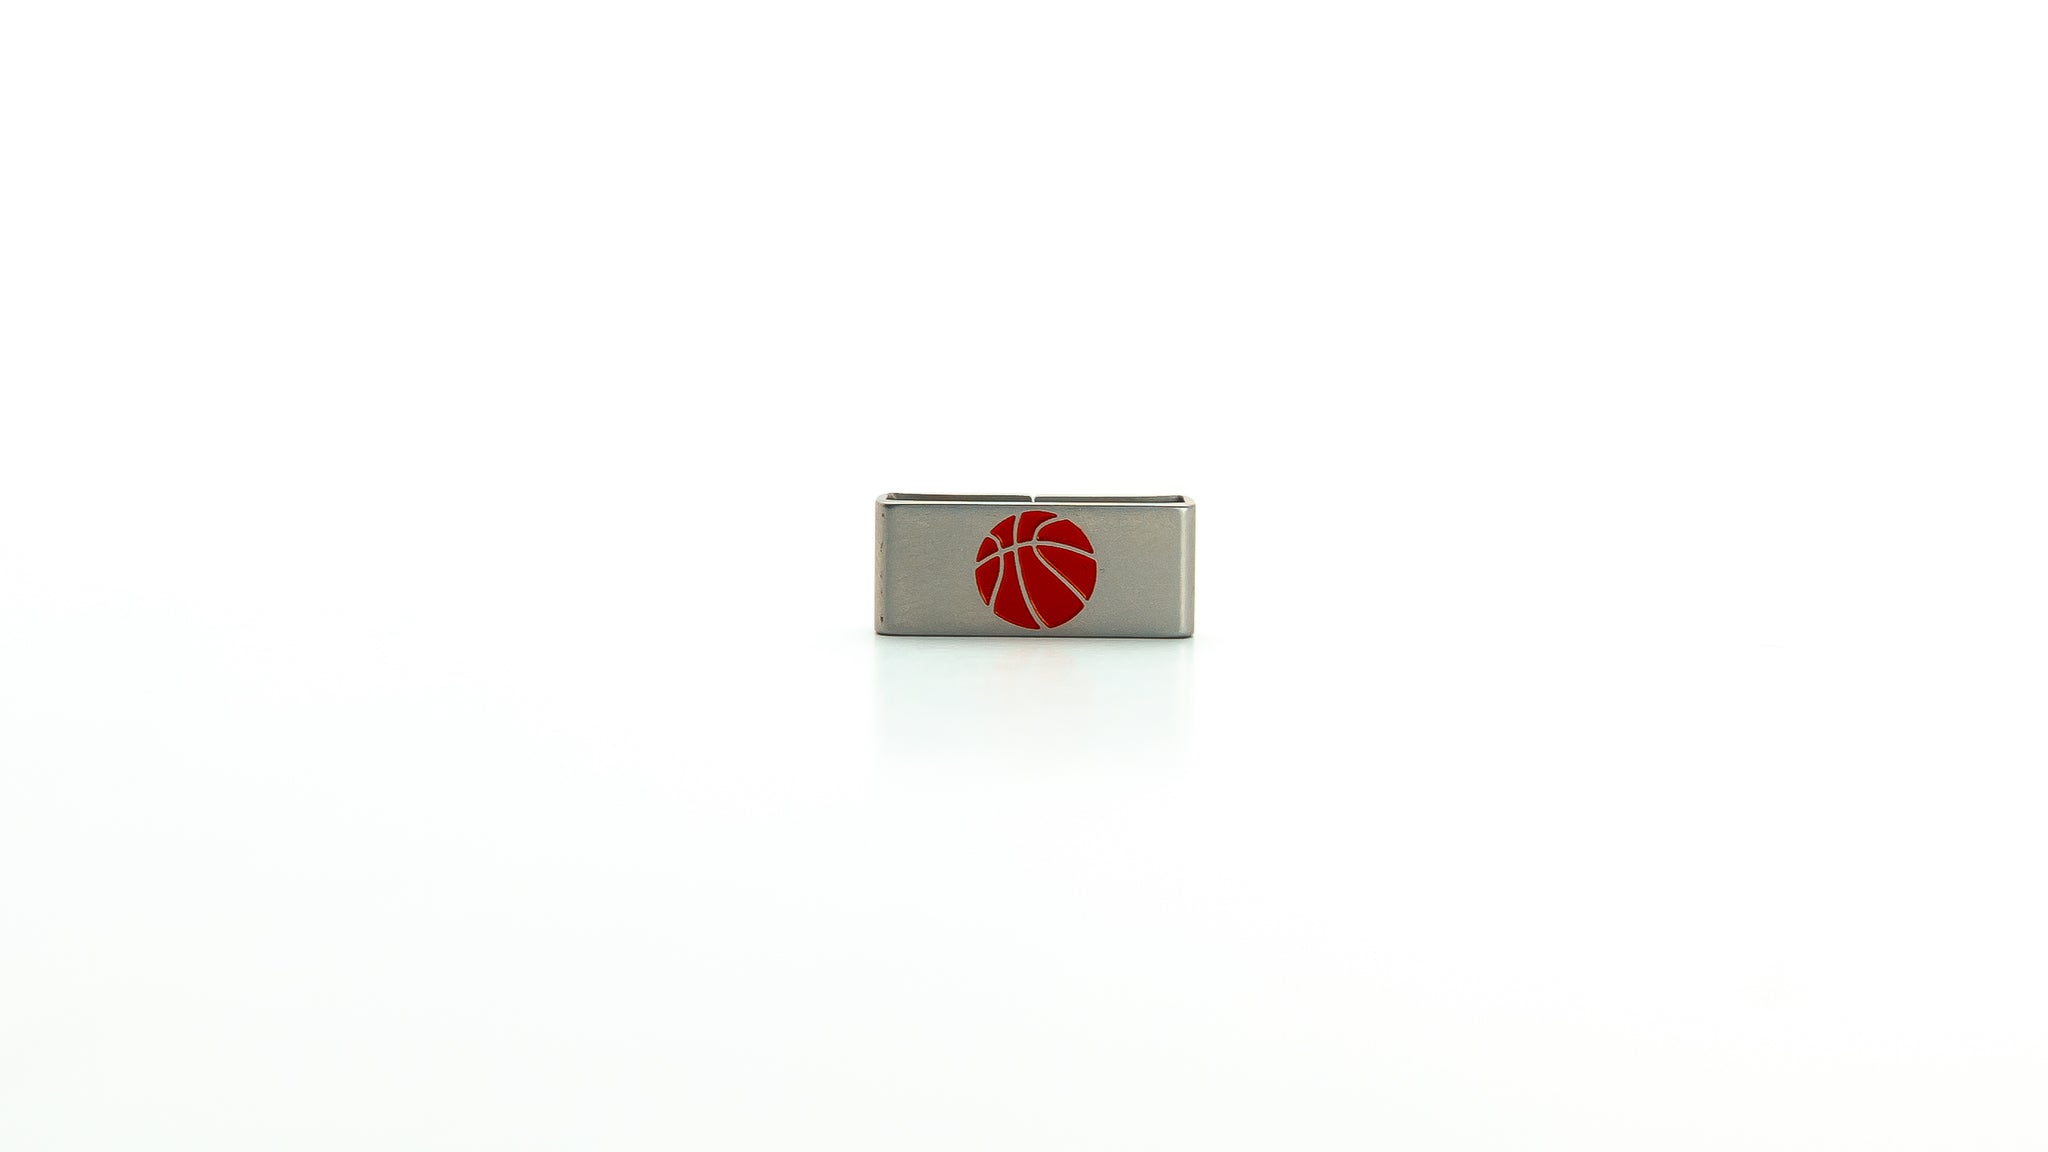 Basketaball stainless steel tag. Radtagz collectible charms.